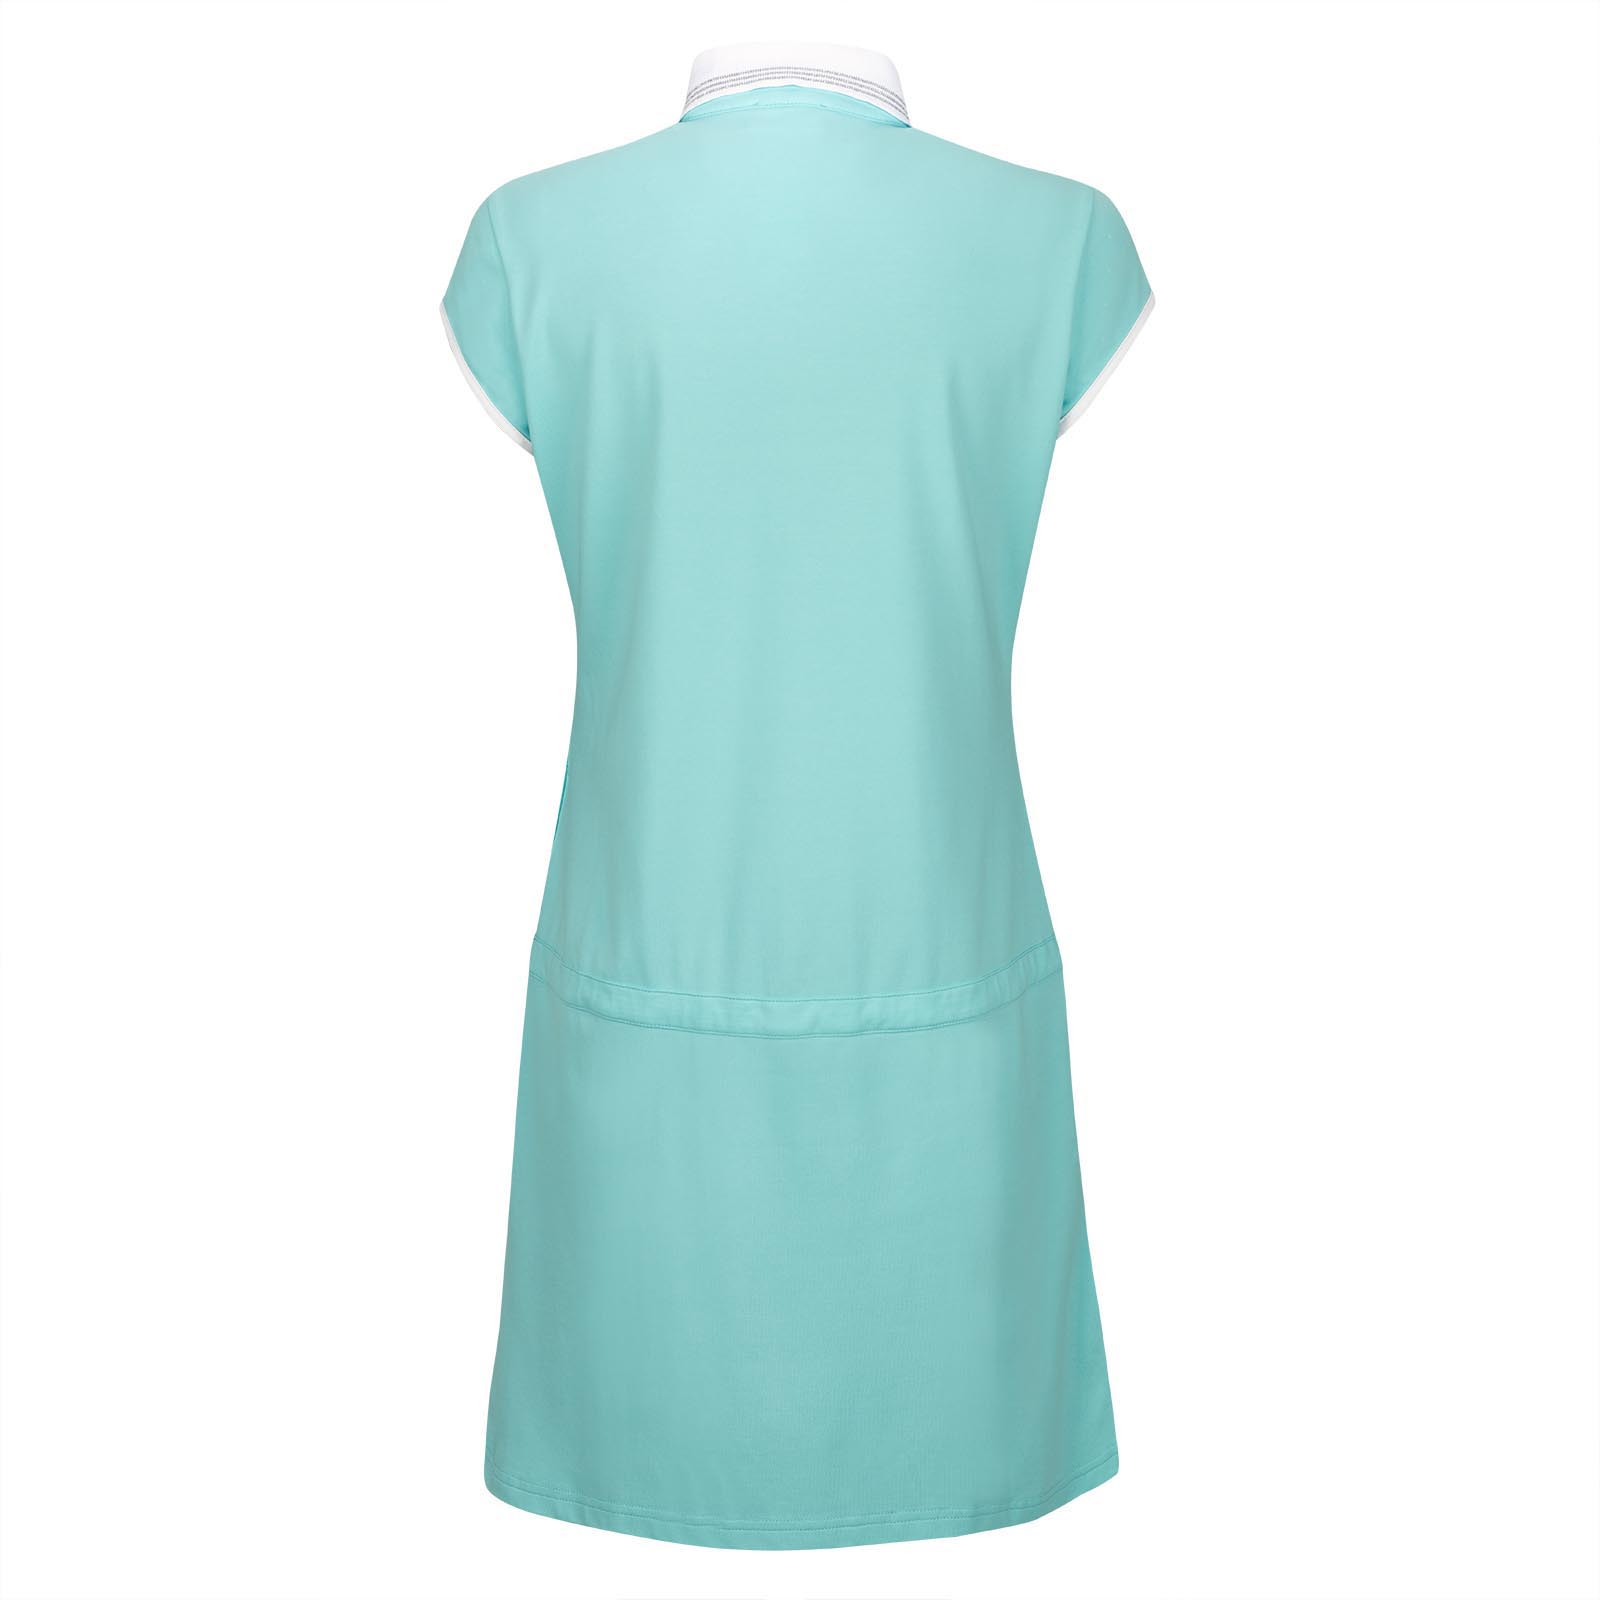 Trendiges Damen Piqué-Golfkleid mit Sunprotection und Mesh-Applikationen